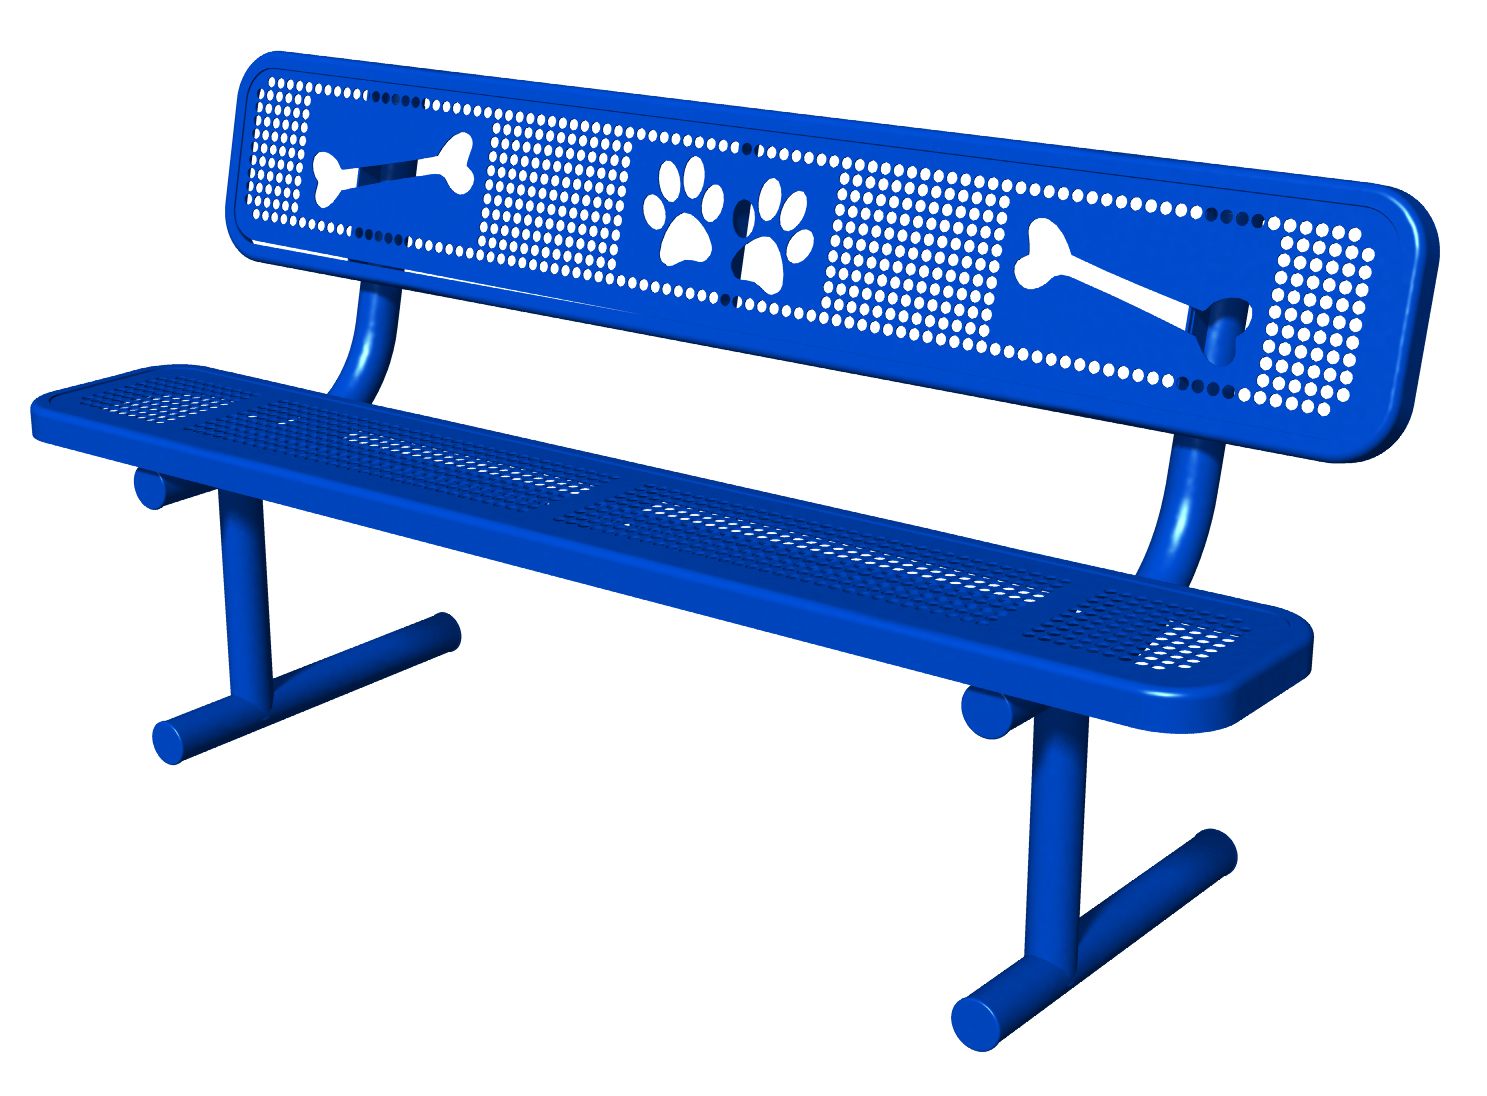 6' Bench with Back, Portable, Perforated with Laser Cut Paw Prints and Bones